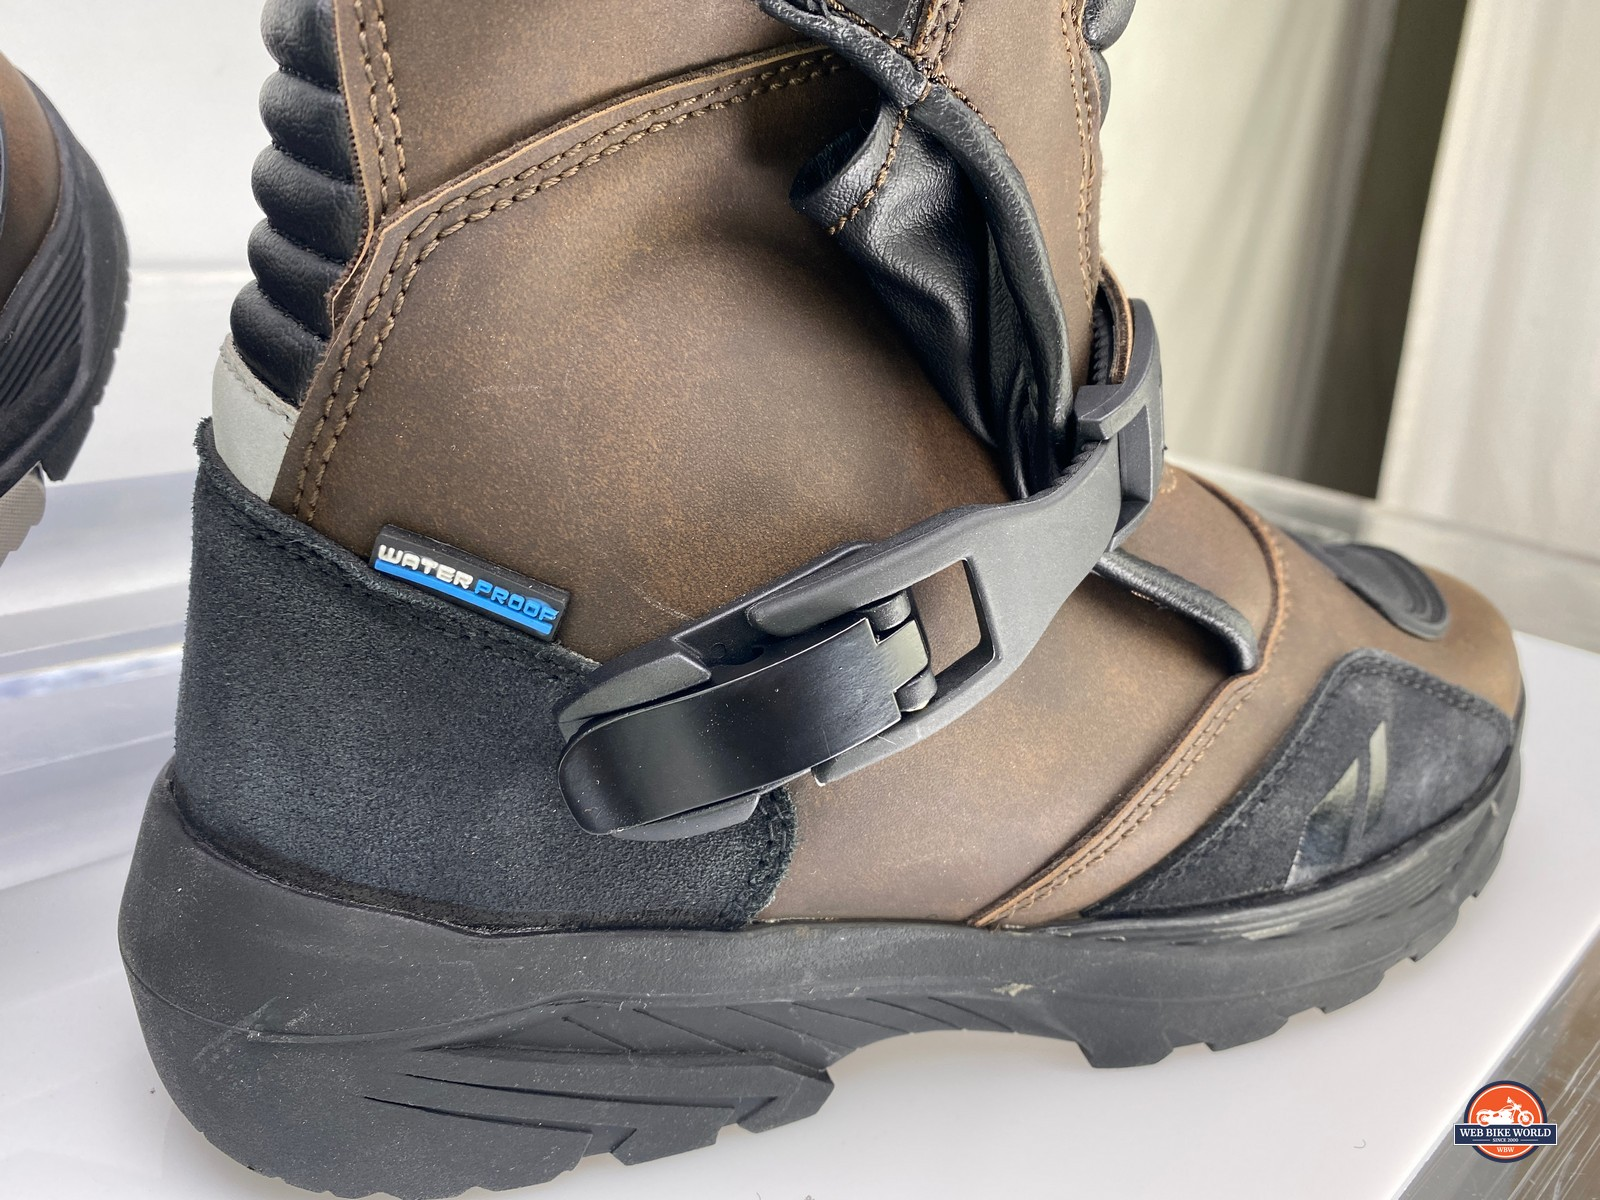 The right side latch closed on the Joe Rocket Canada Whistler Adventure boots.